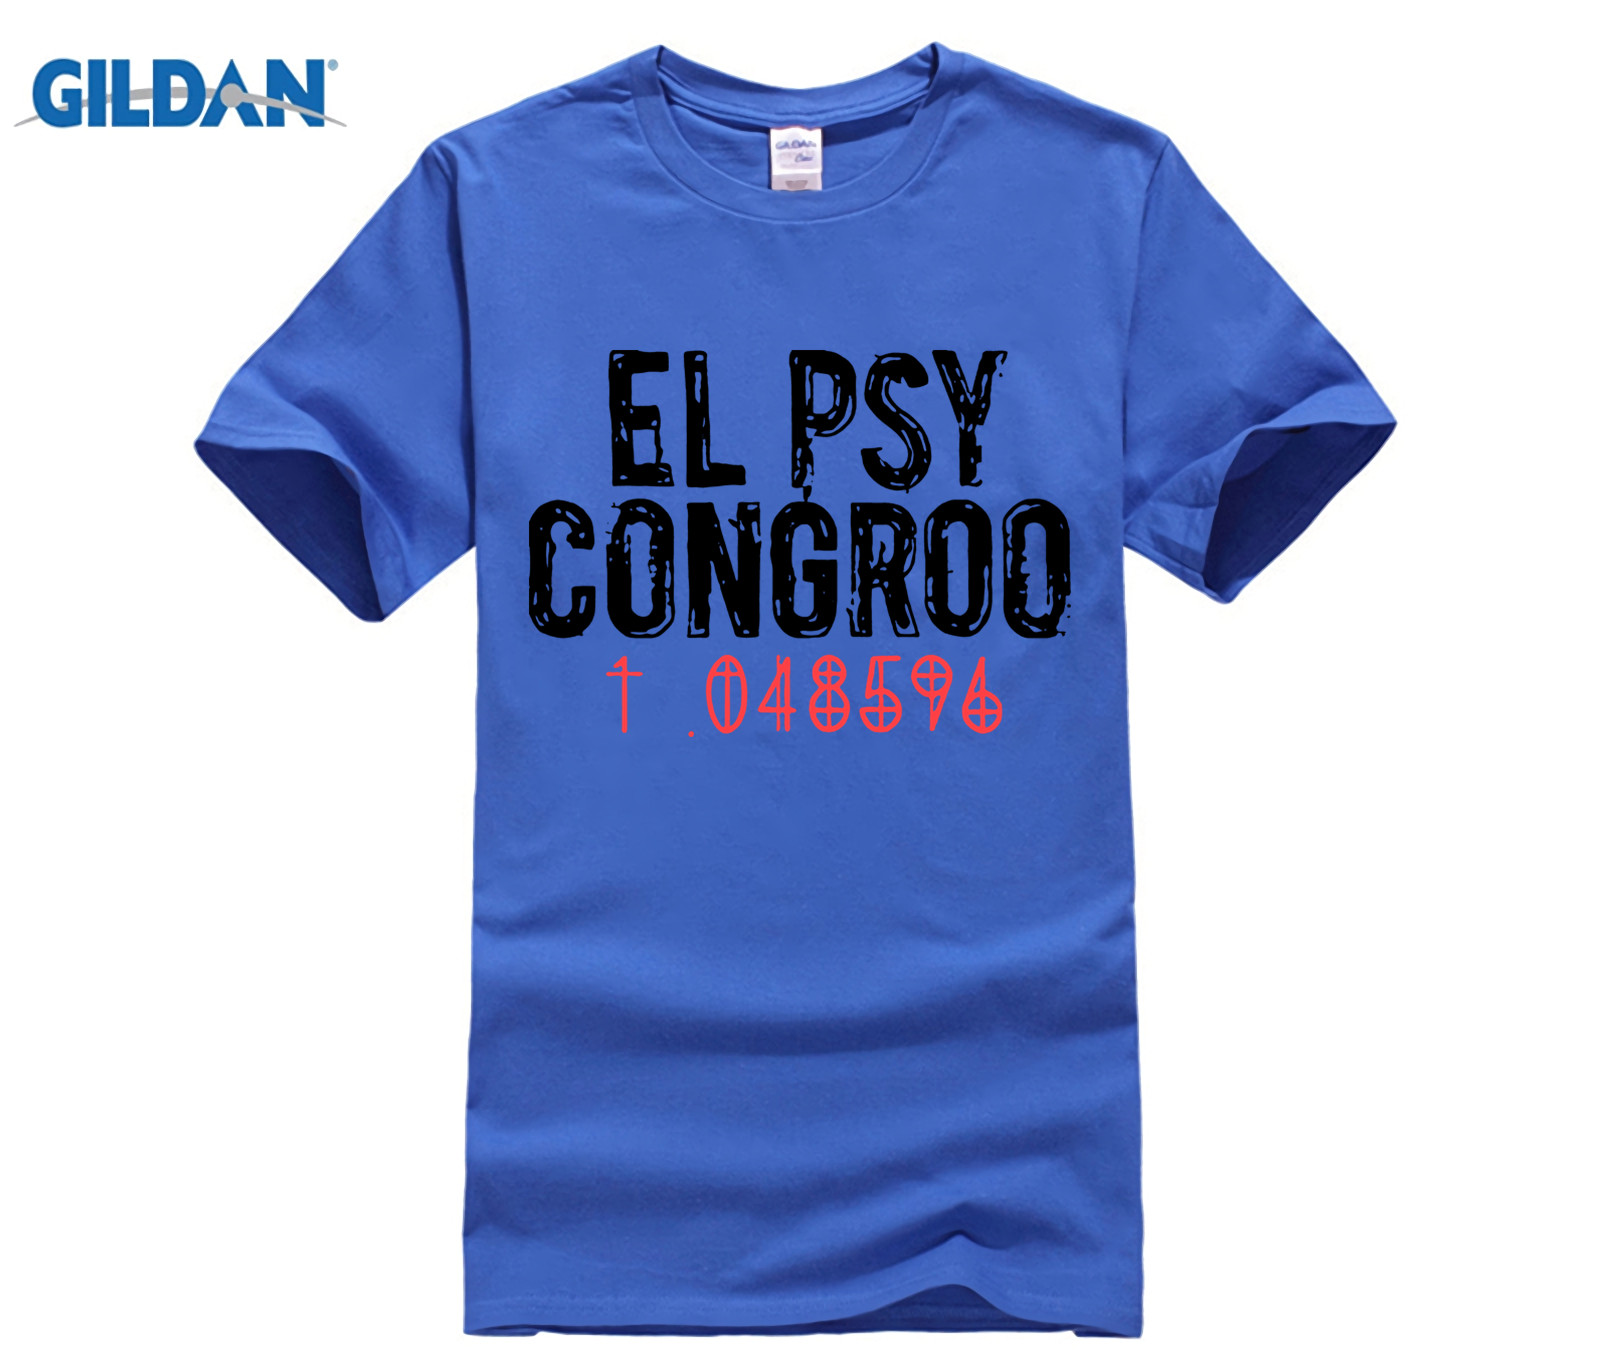 Tops & Tees New Fashion New Steins Gate El Psy Congroo Anime Logo Mens White T Shirt Size S To 3xlfunny Tee Shirts T-shirts